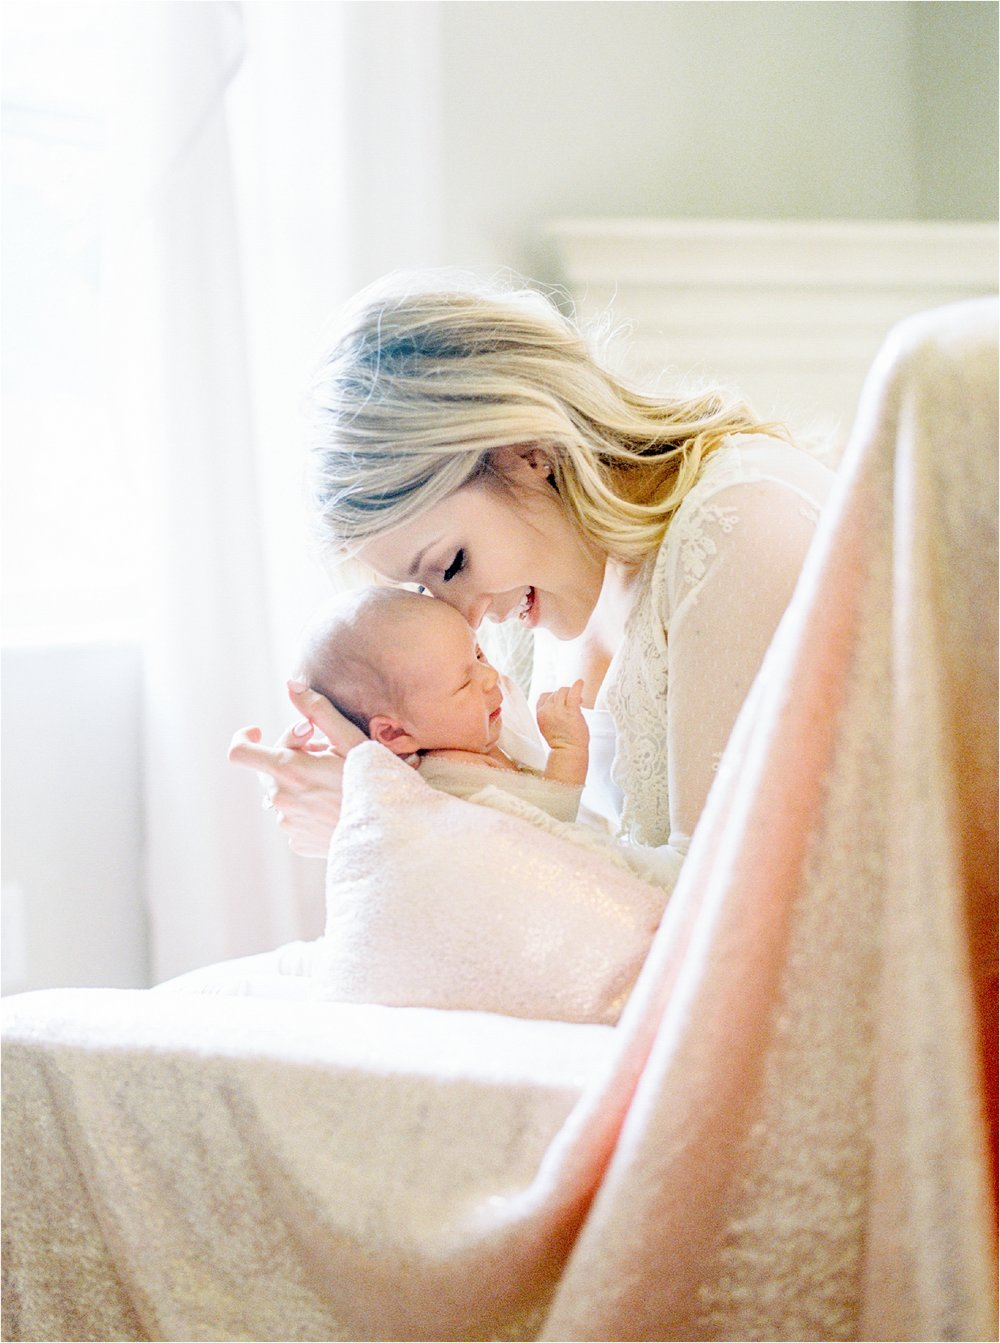 Lisa Silva Photography- Ponte Vedra Beach, St. Augustine and Jacksonville, Florida Fine Art Film Wedding and Boudoir Photography- Newborn Lifestyle Session at Home_0005.jpg